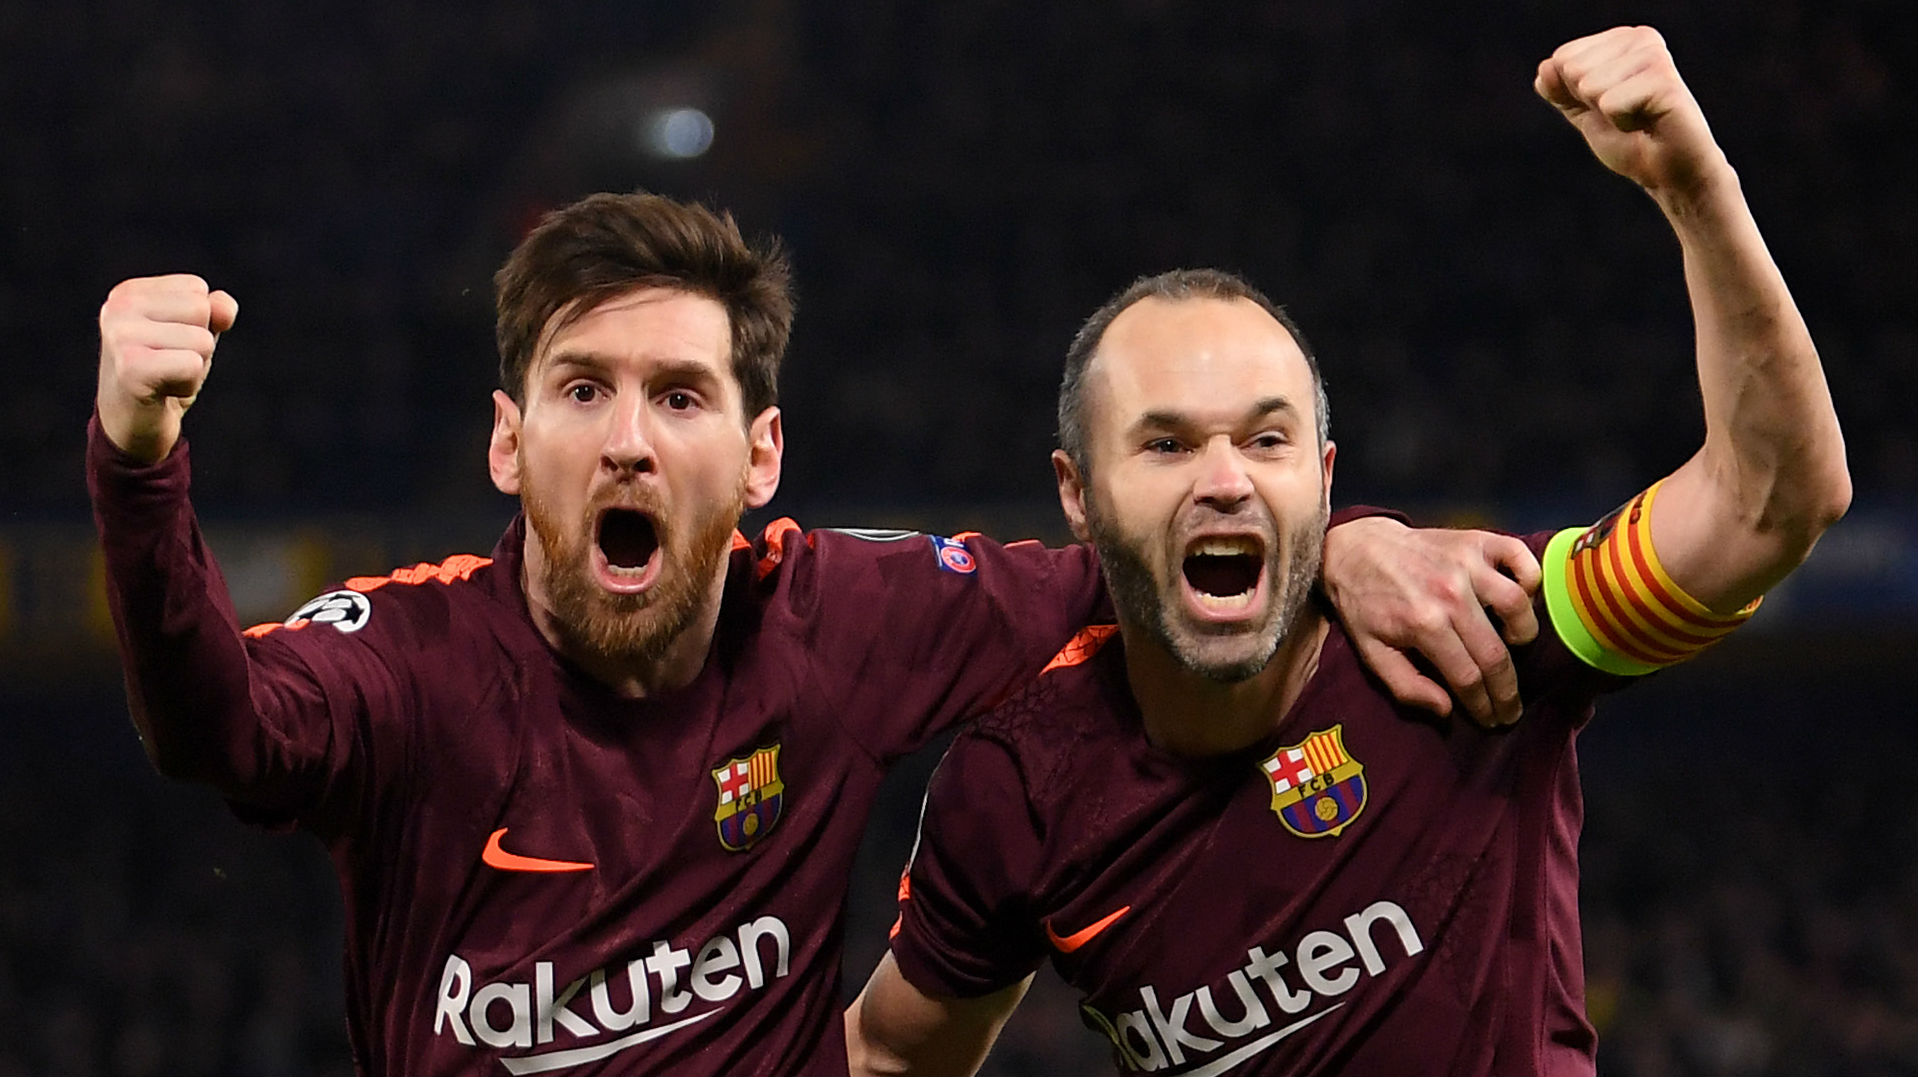 Iniesta the closest talent to Messi, says former Barcelona coach Luis Enrique